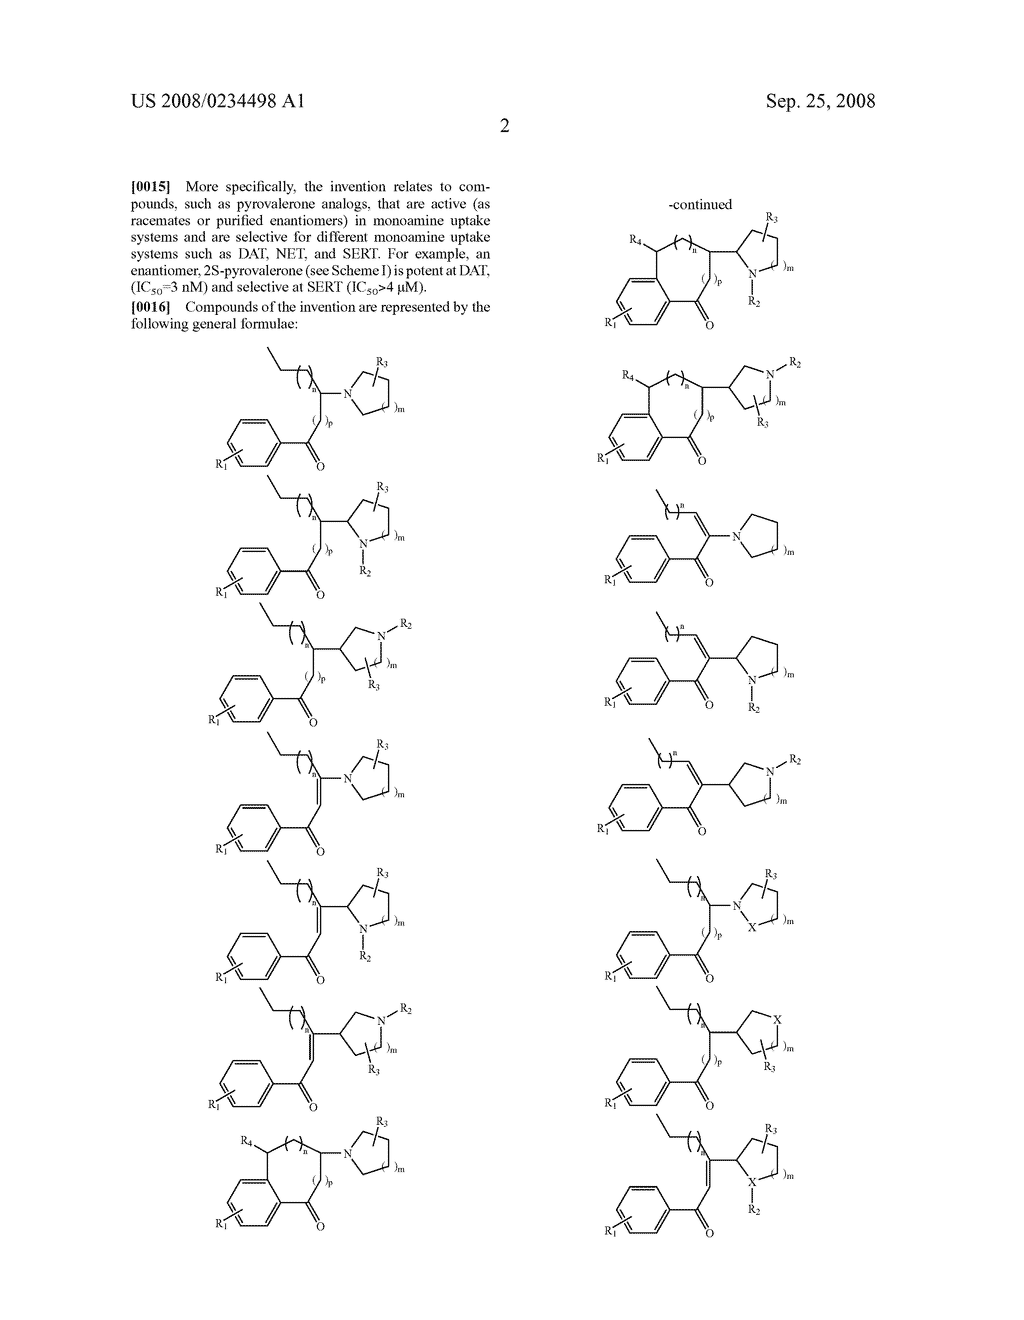 Pyrovalerone Analogues and Therapeutic Uses Thereof - diagram, schematic, and image 05